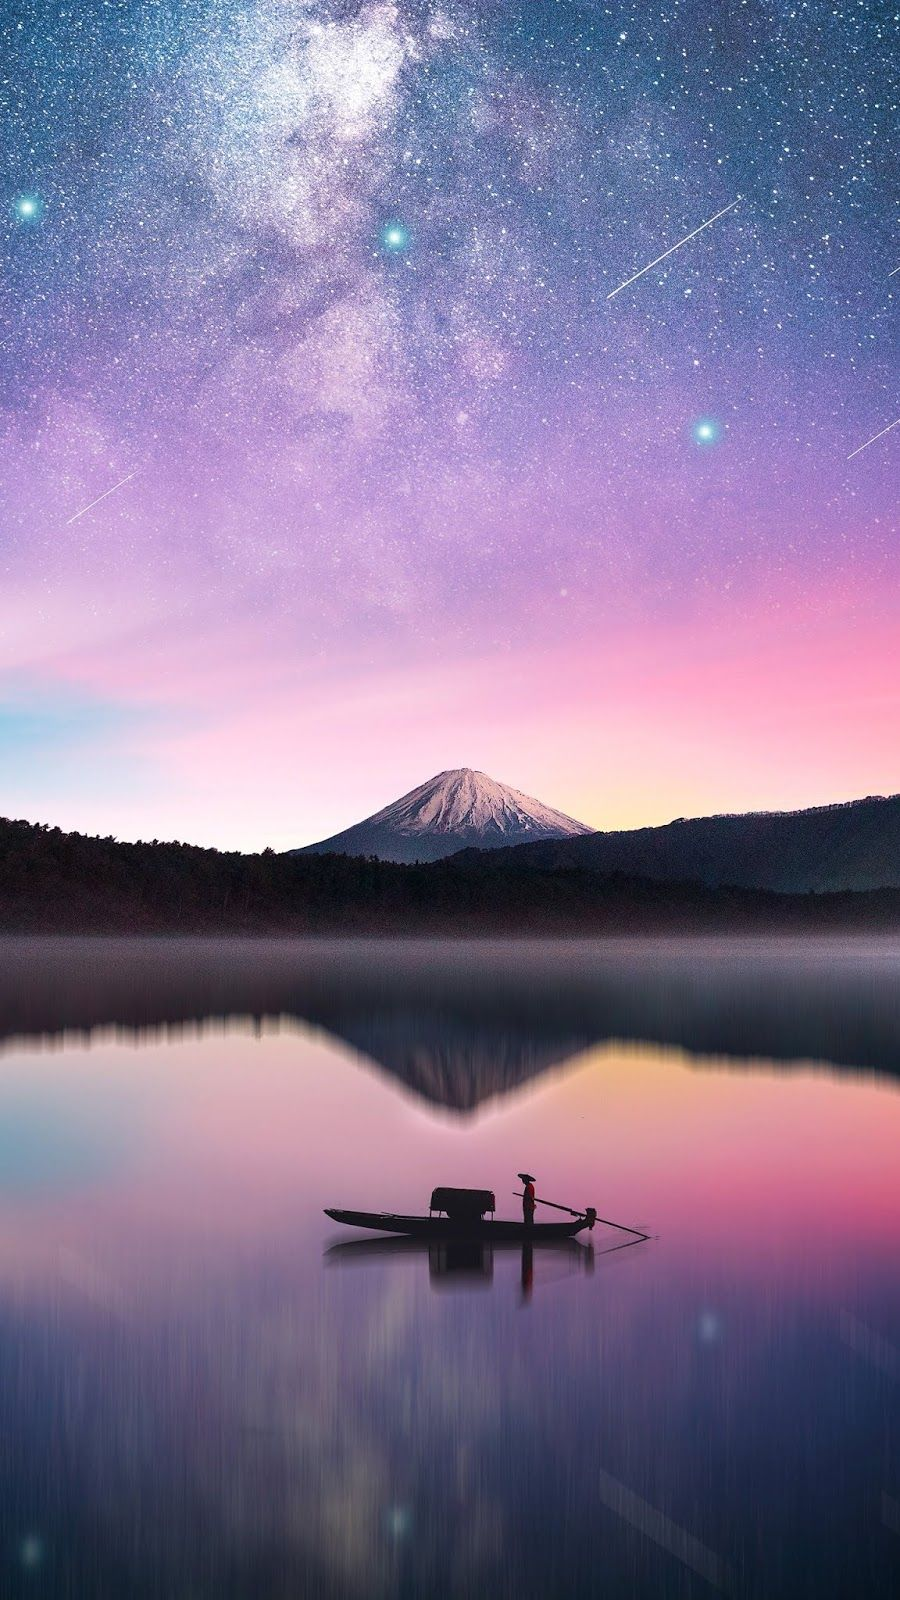 Milky Way In Mount Fuji Wallpaper Pins Emely Fondos De